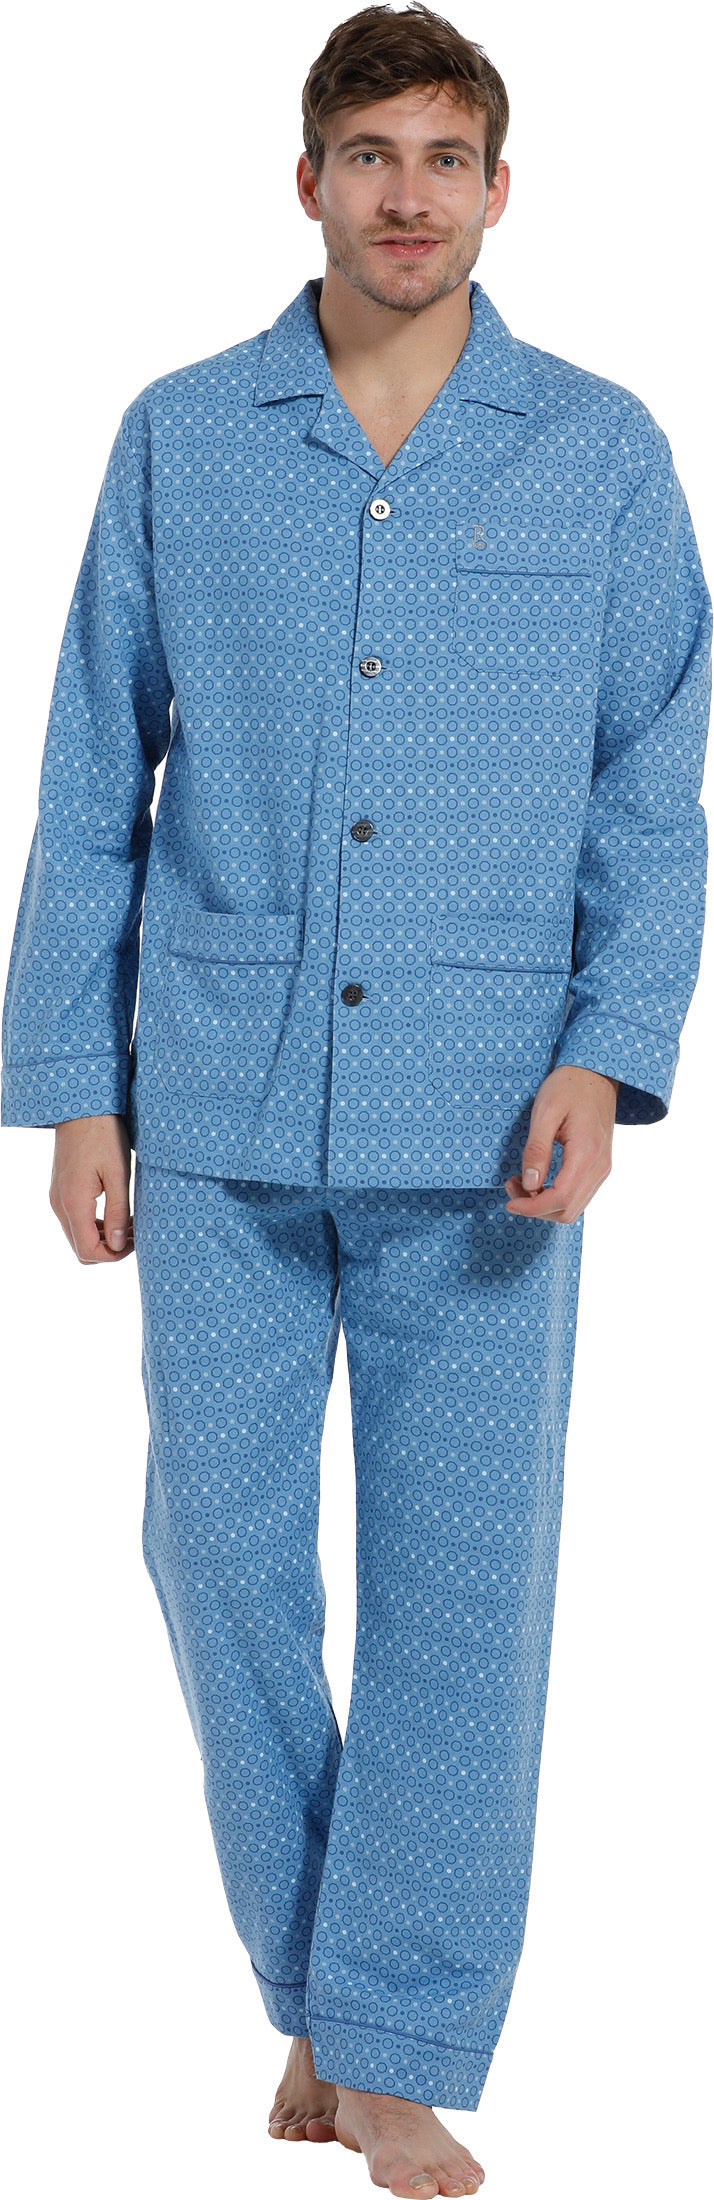 Pyjama 27202-701-6 509 light blue